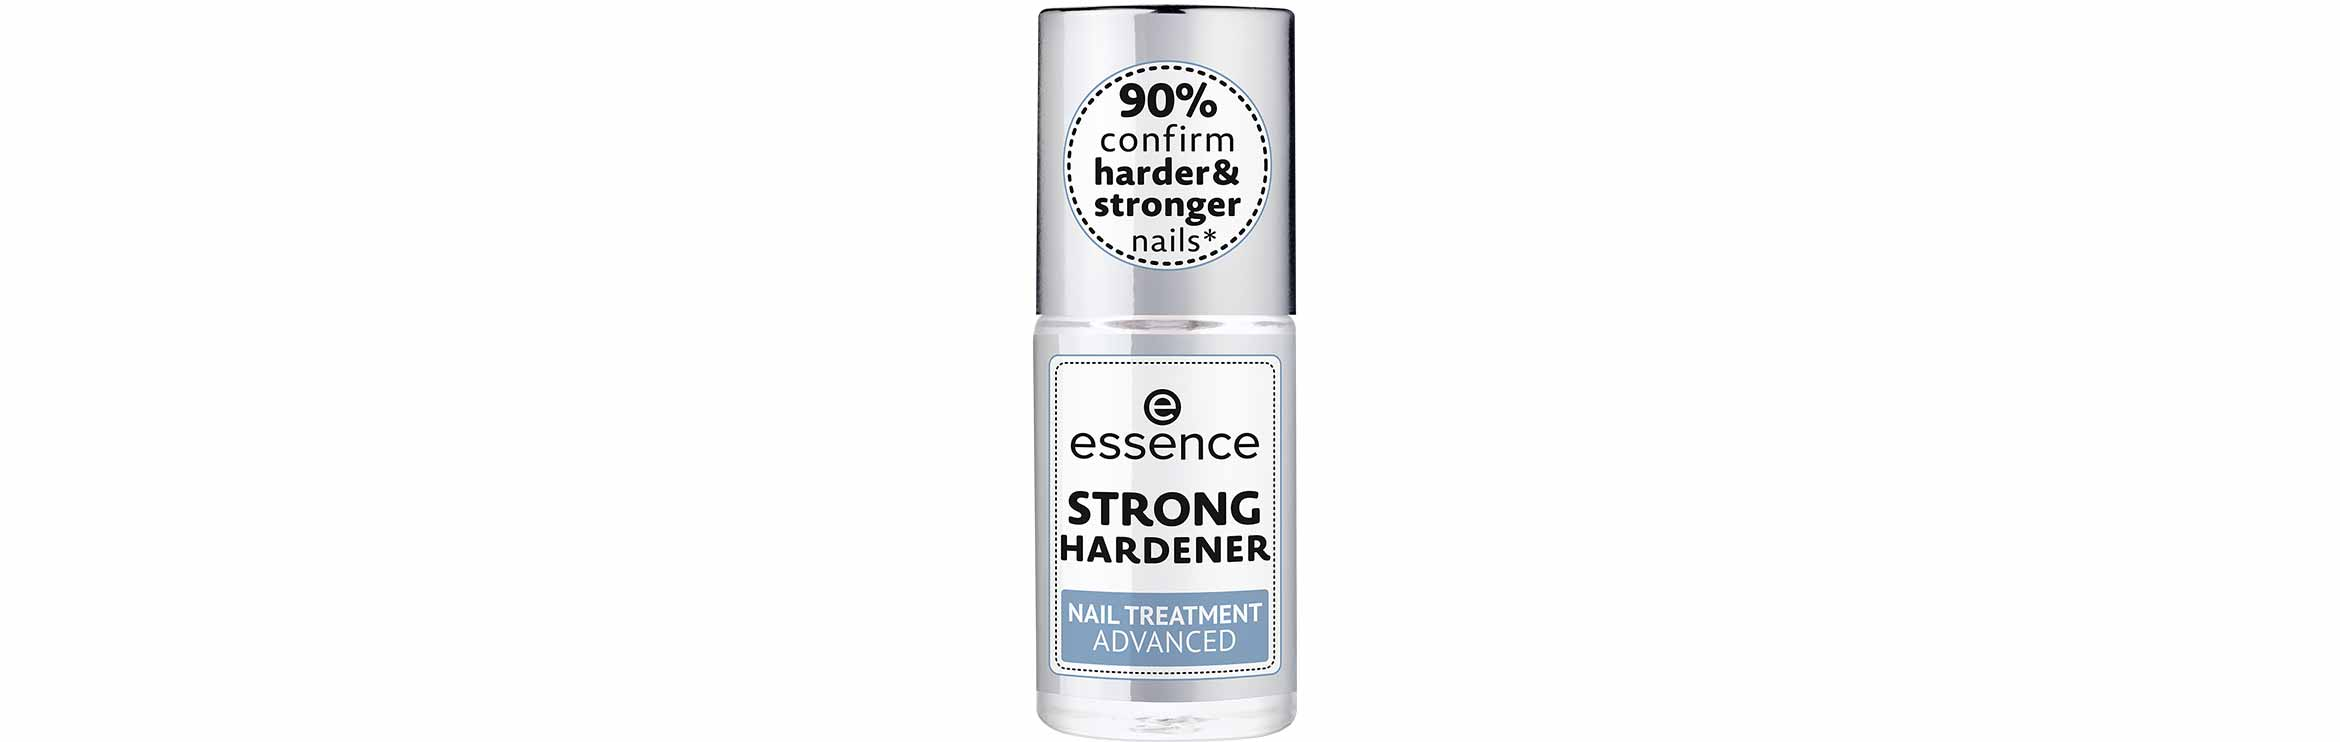 essence-strong-hardener-nail-treatment-advanced